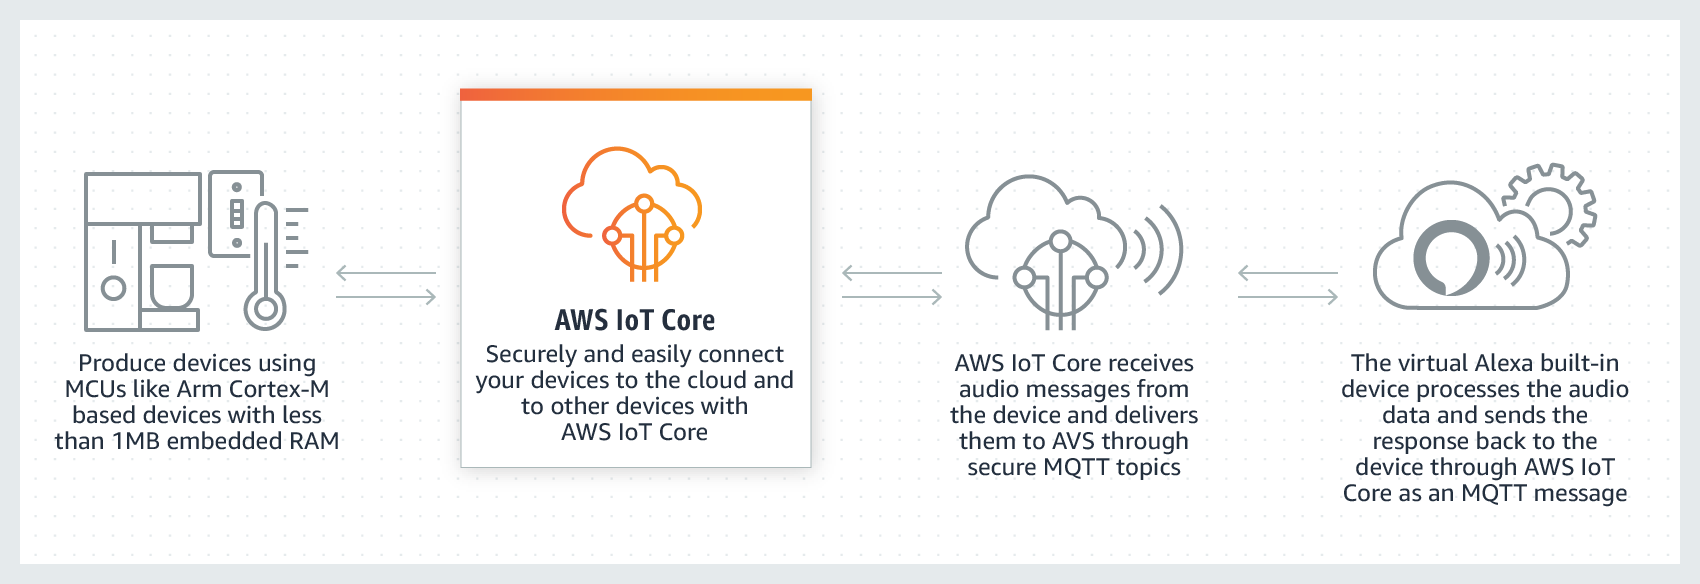 Use o AWS IoT Core para ler e definir o estado do dispositivo